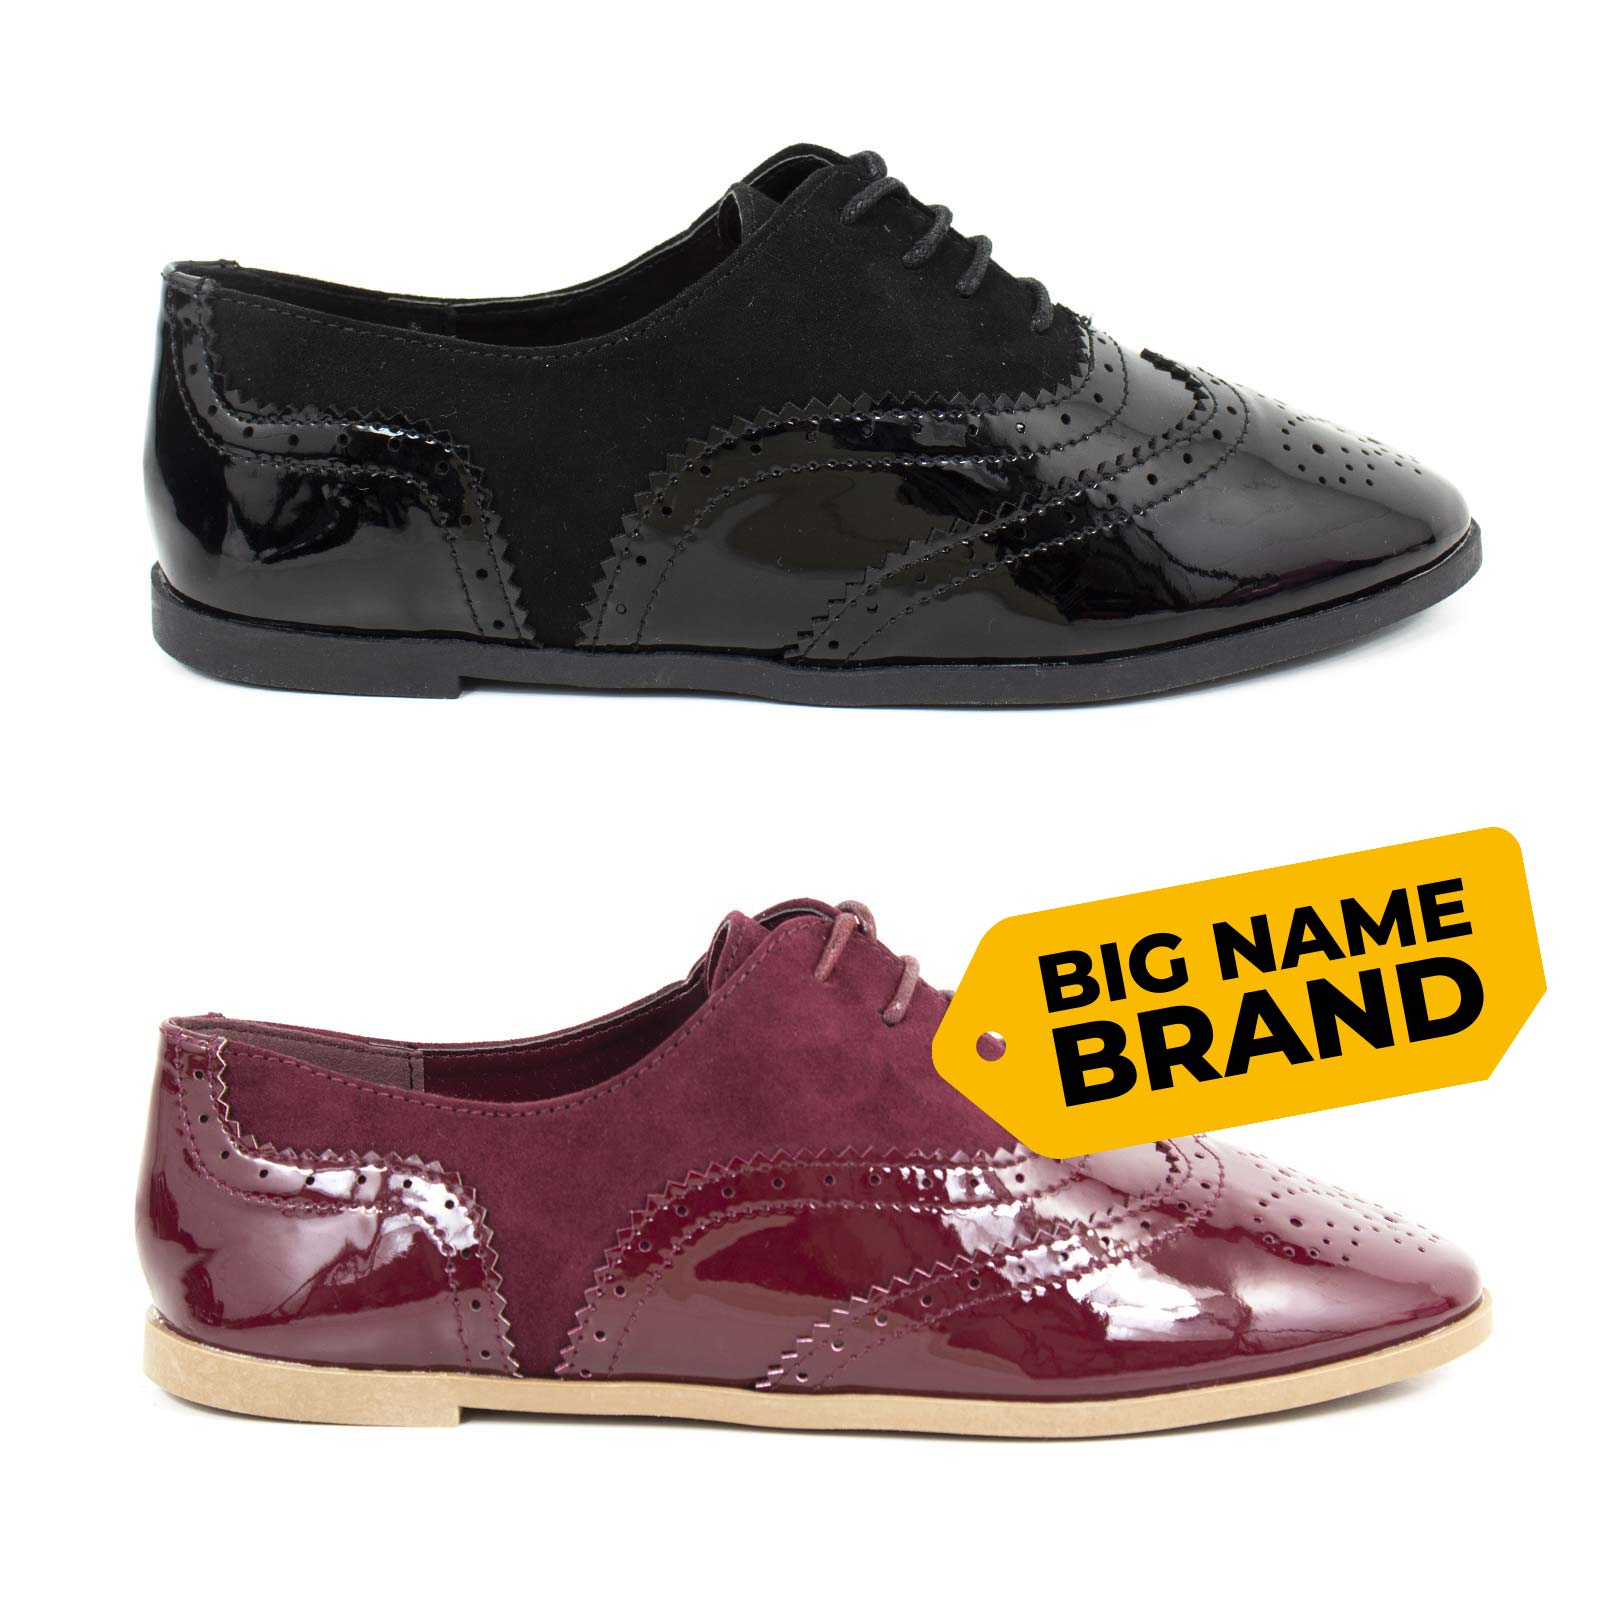 4685ef867b4 Details about Girl Ladies Womens Flat Black Patent Leather Lace Ups Brogues  Shoes School 3-8